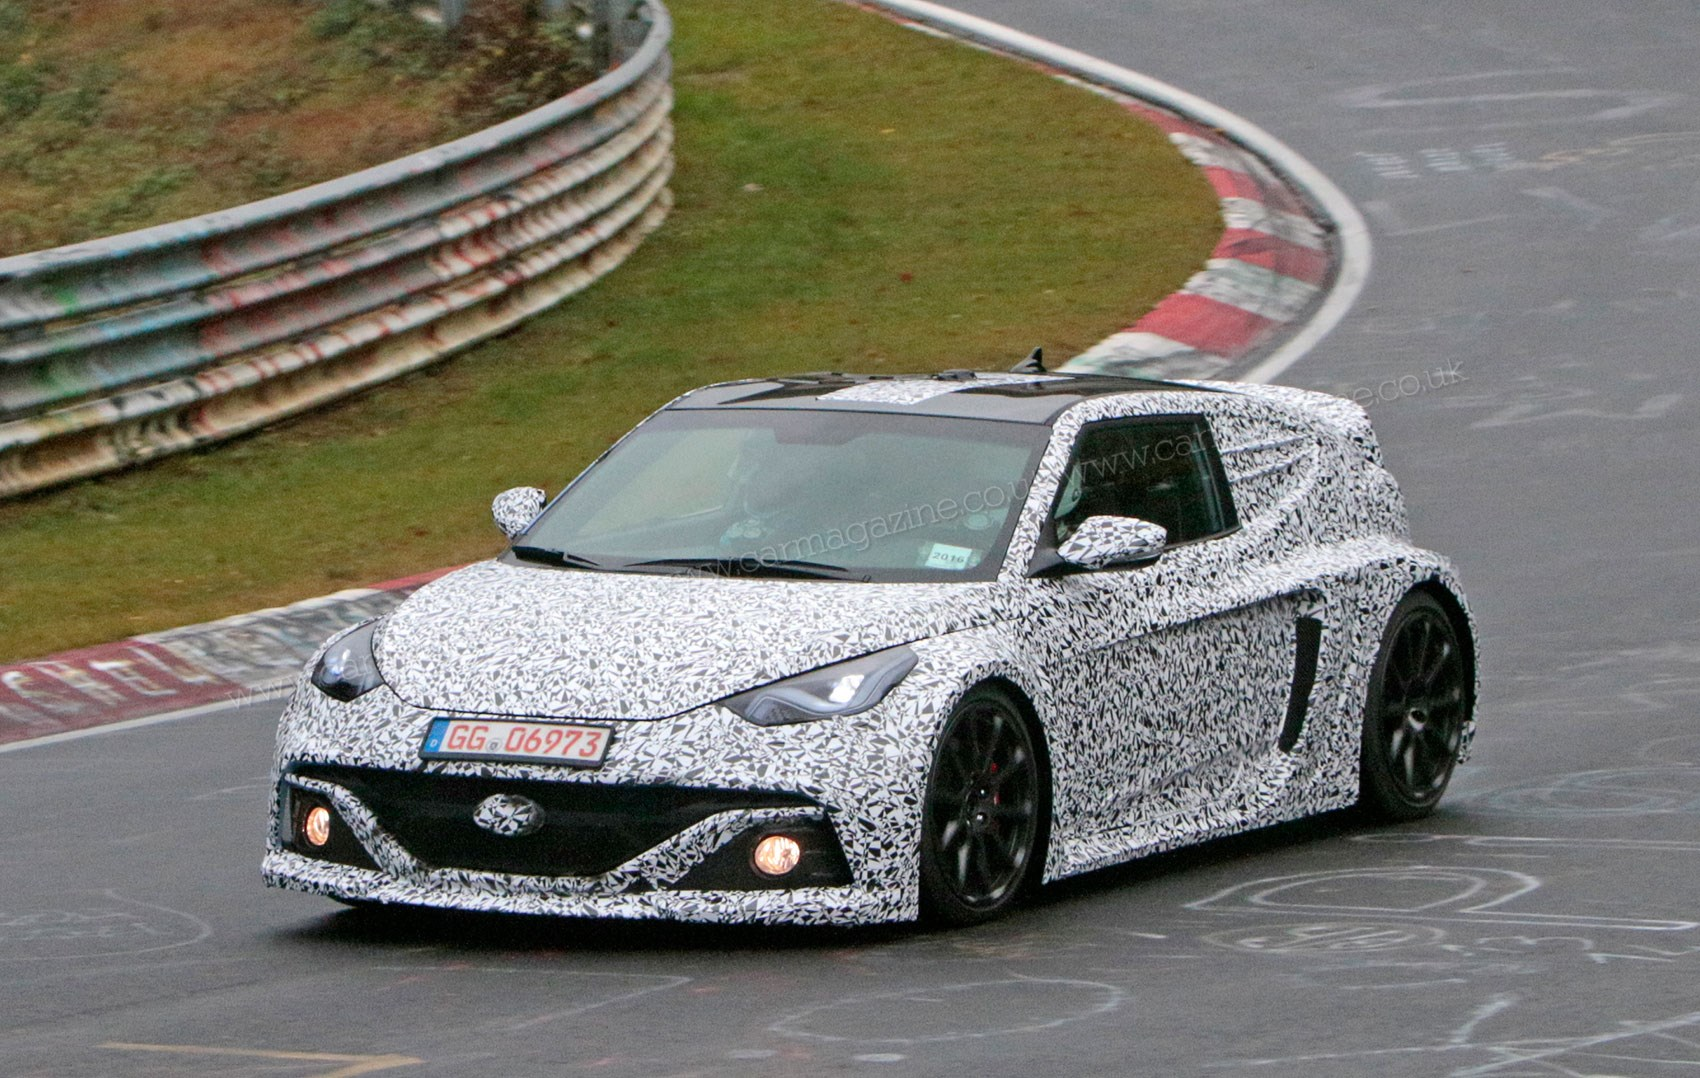 Hyundai Rm16 >> Hyundai Rm16 Mid Engined Hyper Hatch Spied At The Nurburgring By Car